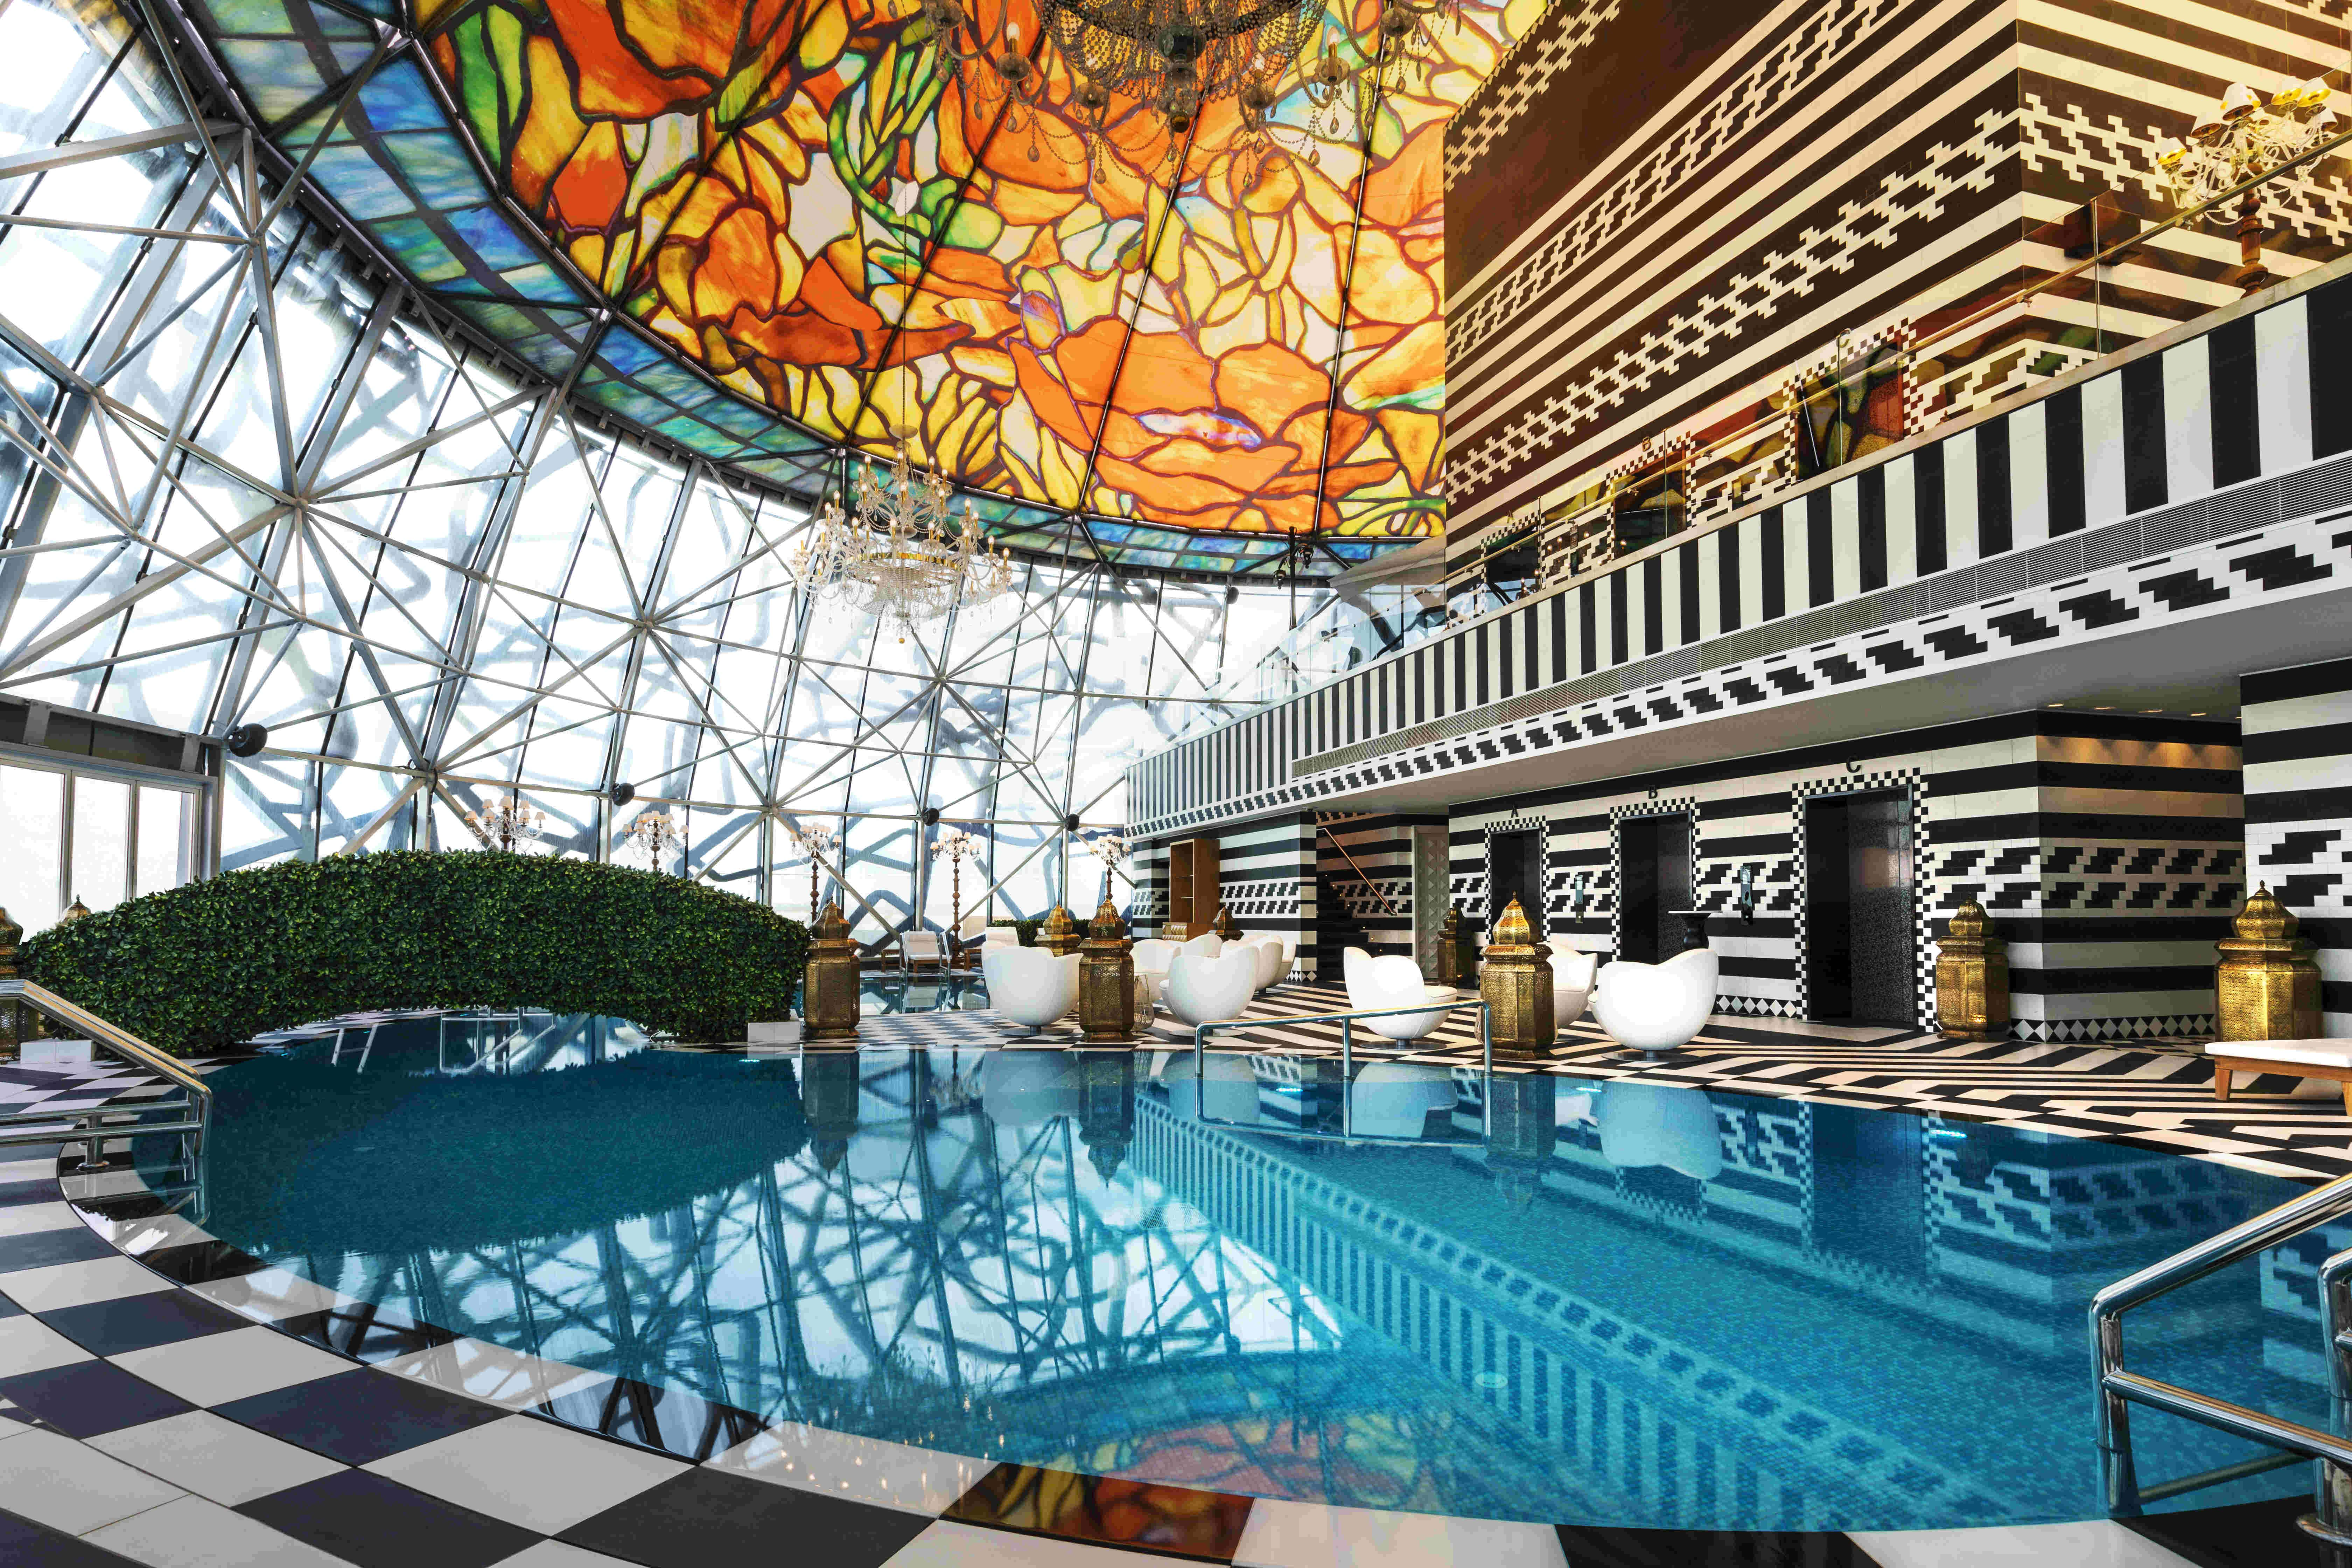 This new hotel in Doha features a kaleidoscope of amazing patterns